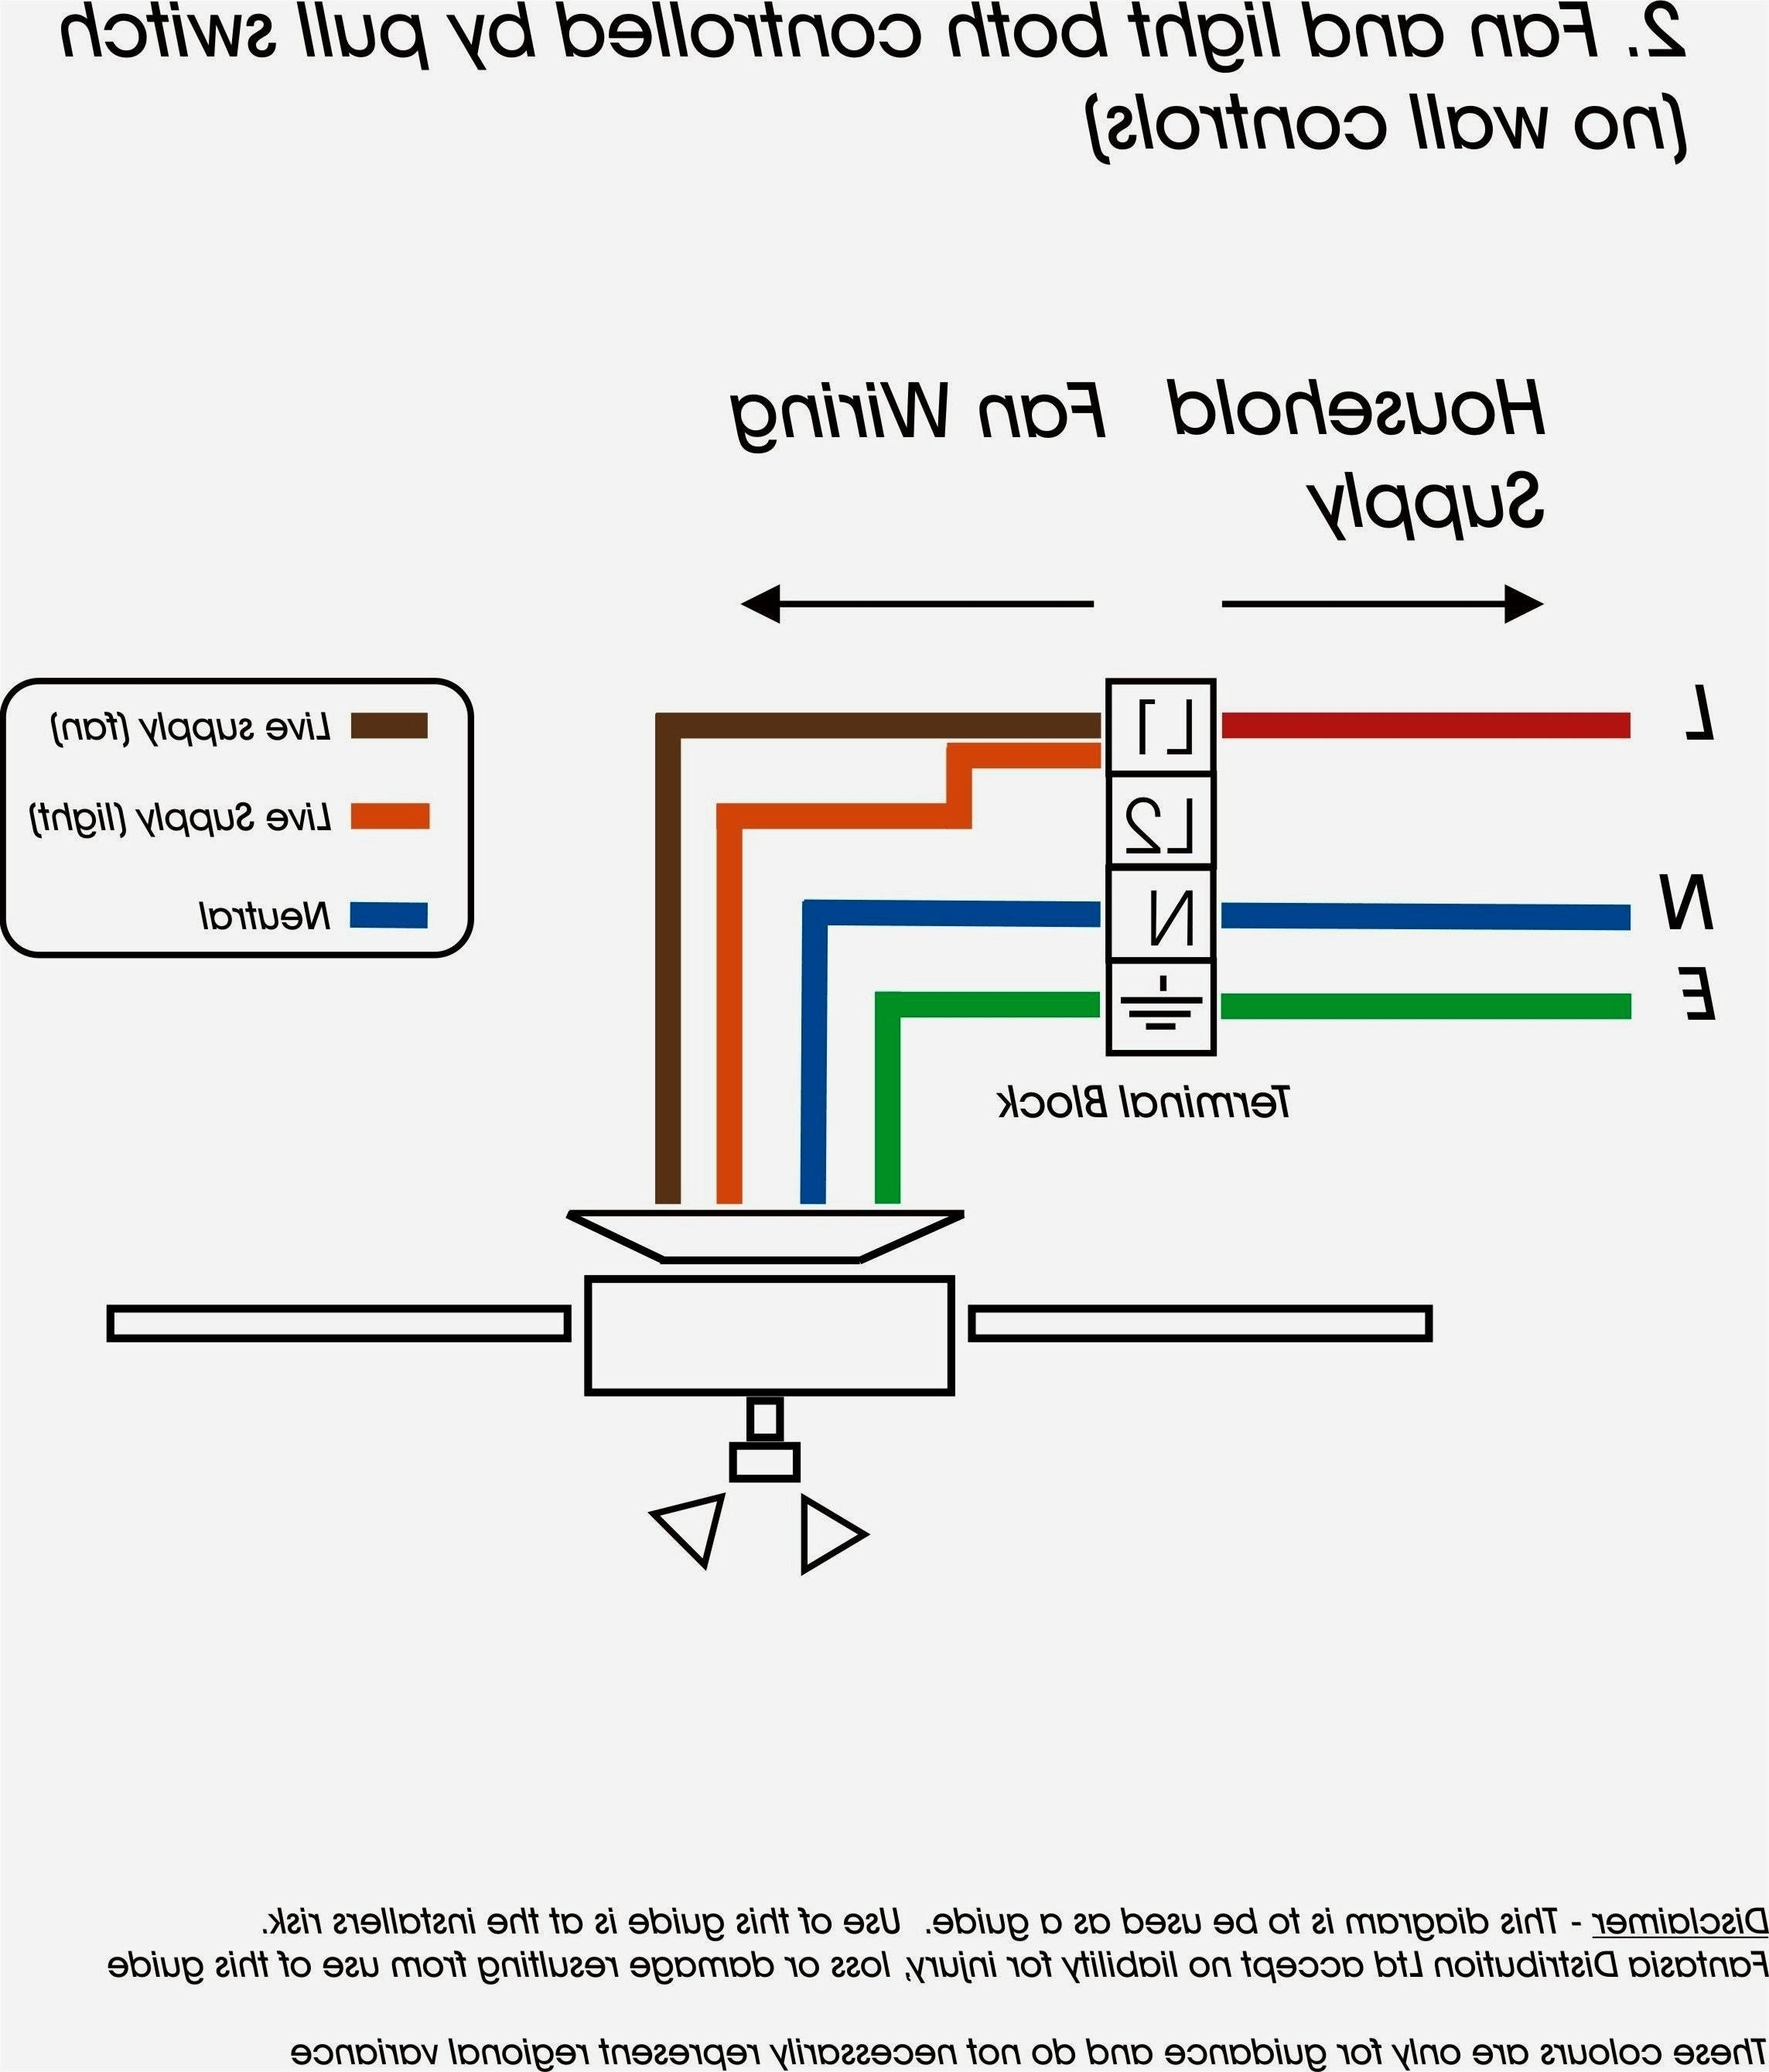 rib2401b wiring diagram Download-ceiling fan control switch wiring diagram Collection Wiring Diagram For 3 Speed Ceiling Fan New 18-d